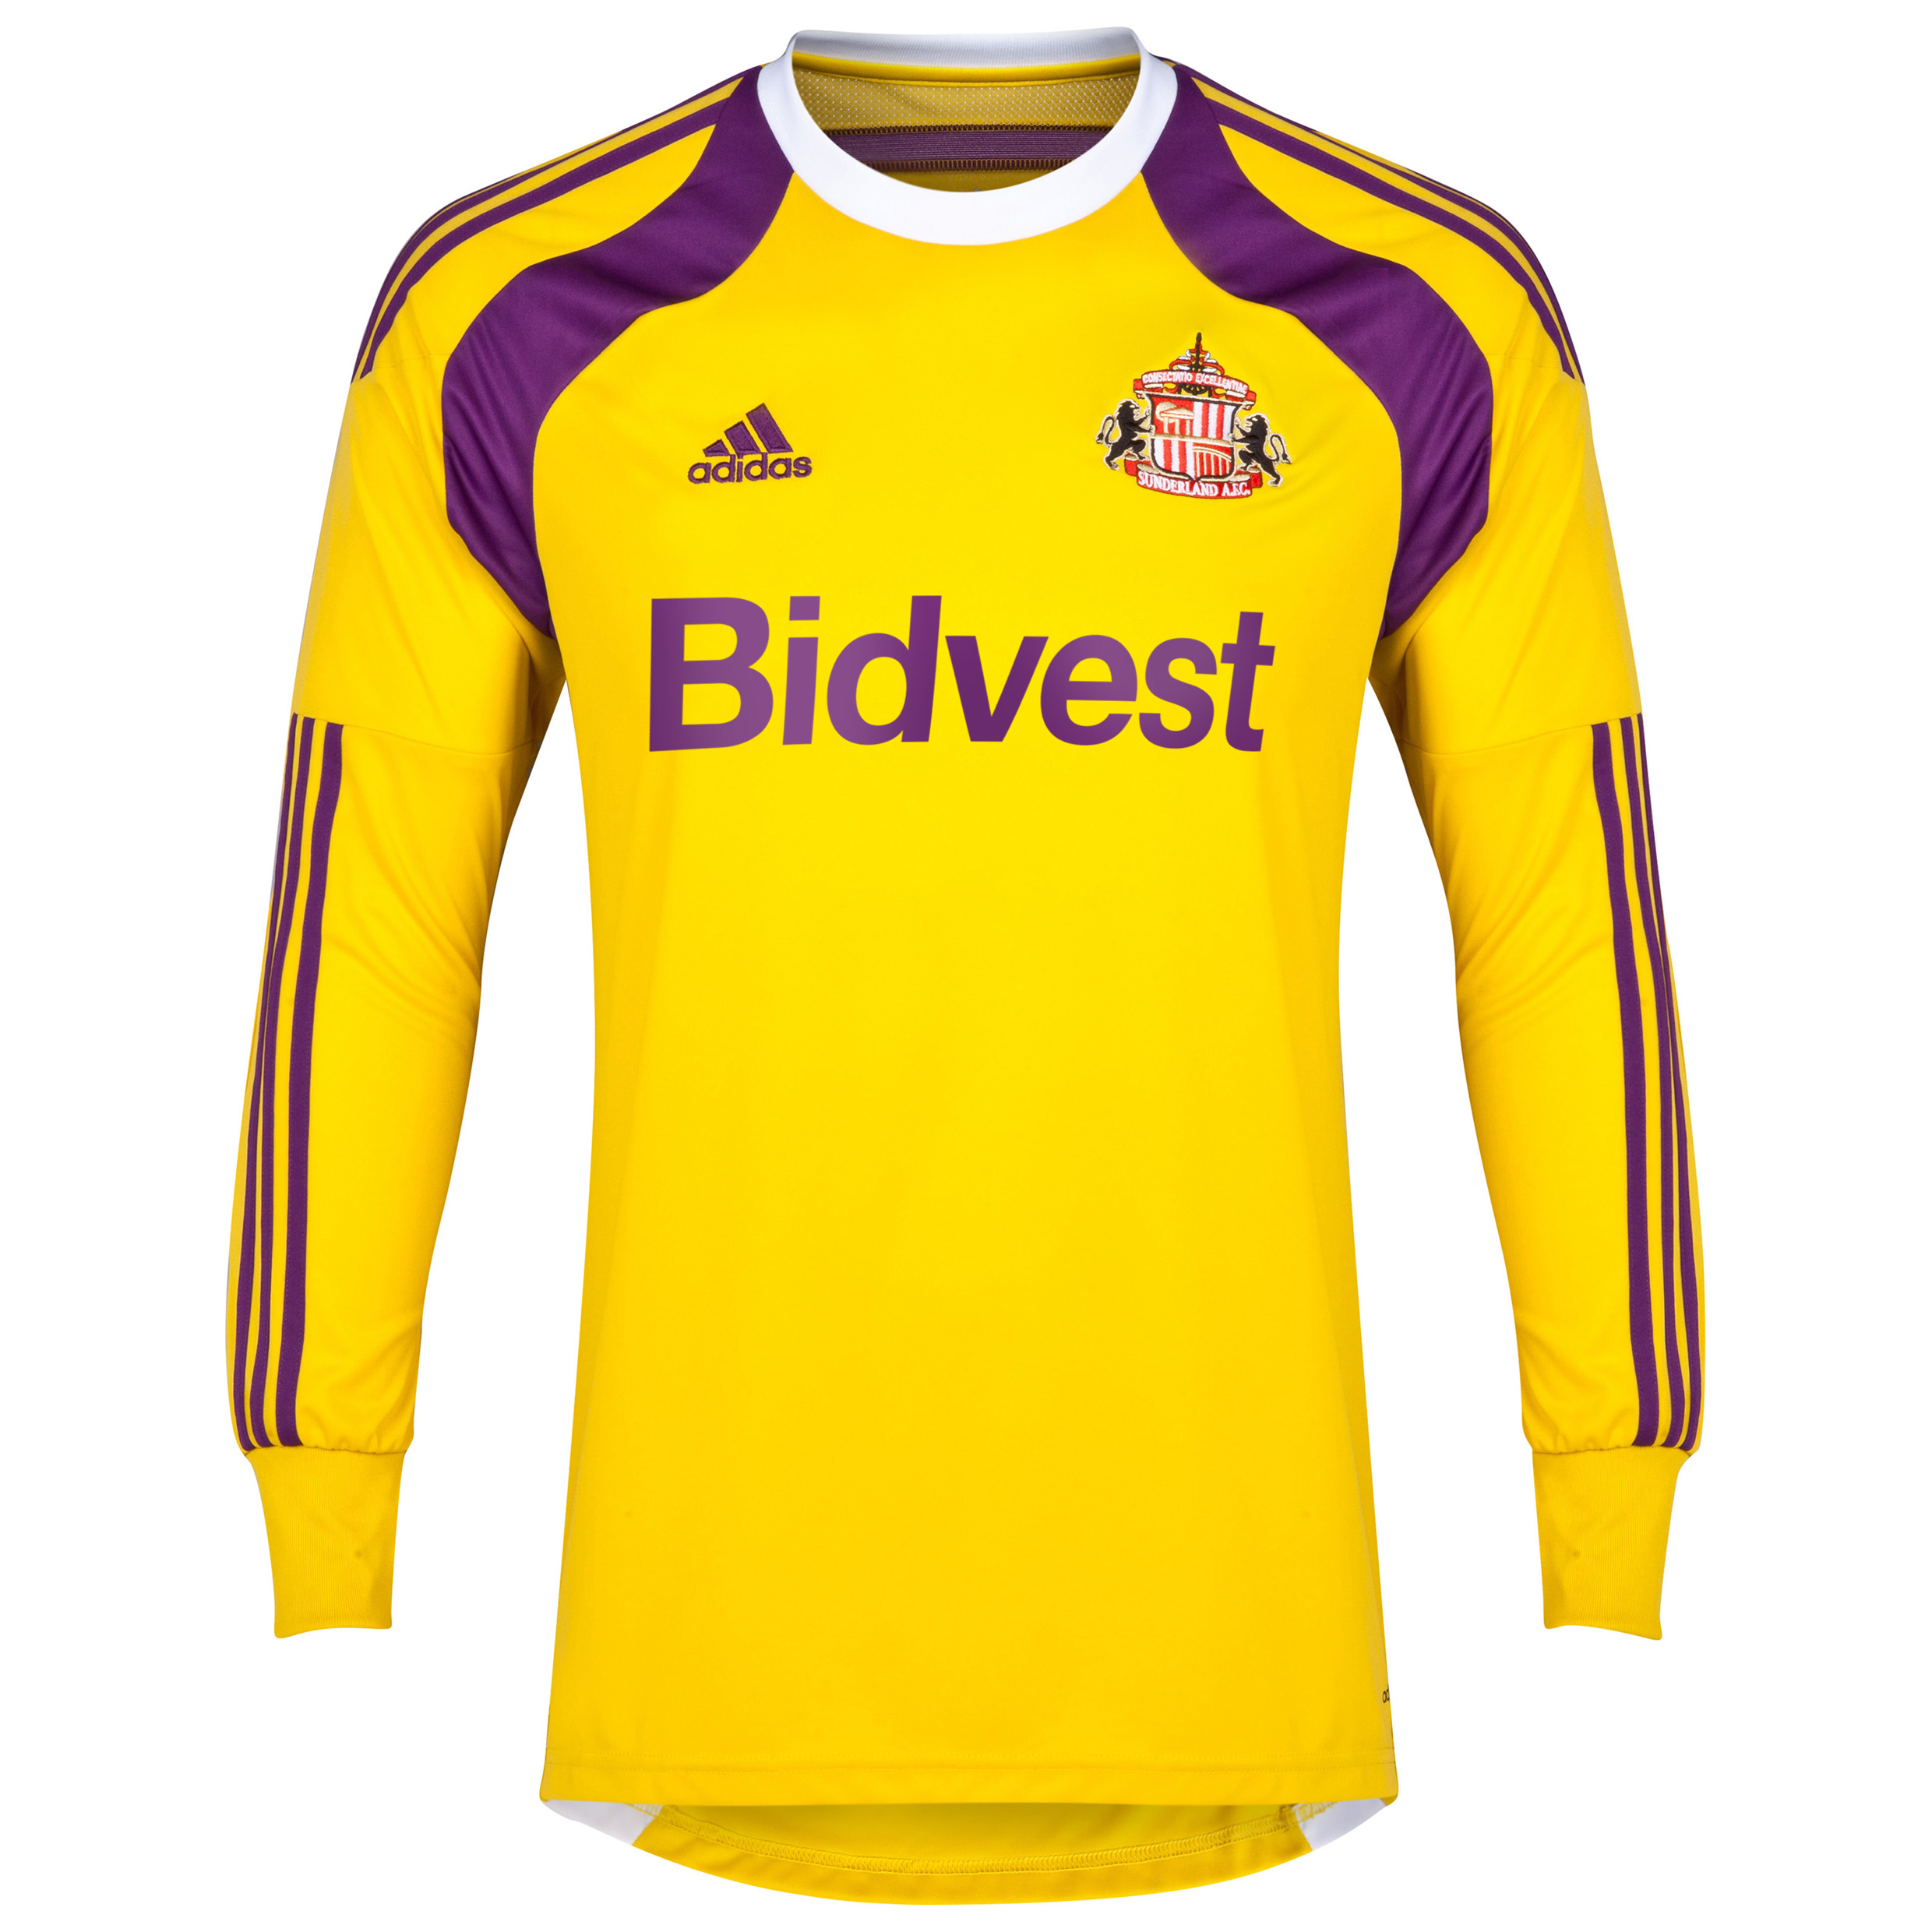 Sunderland Home GK Shirt 2014/15 - Junior Yellow